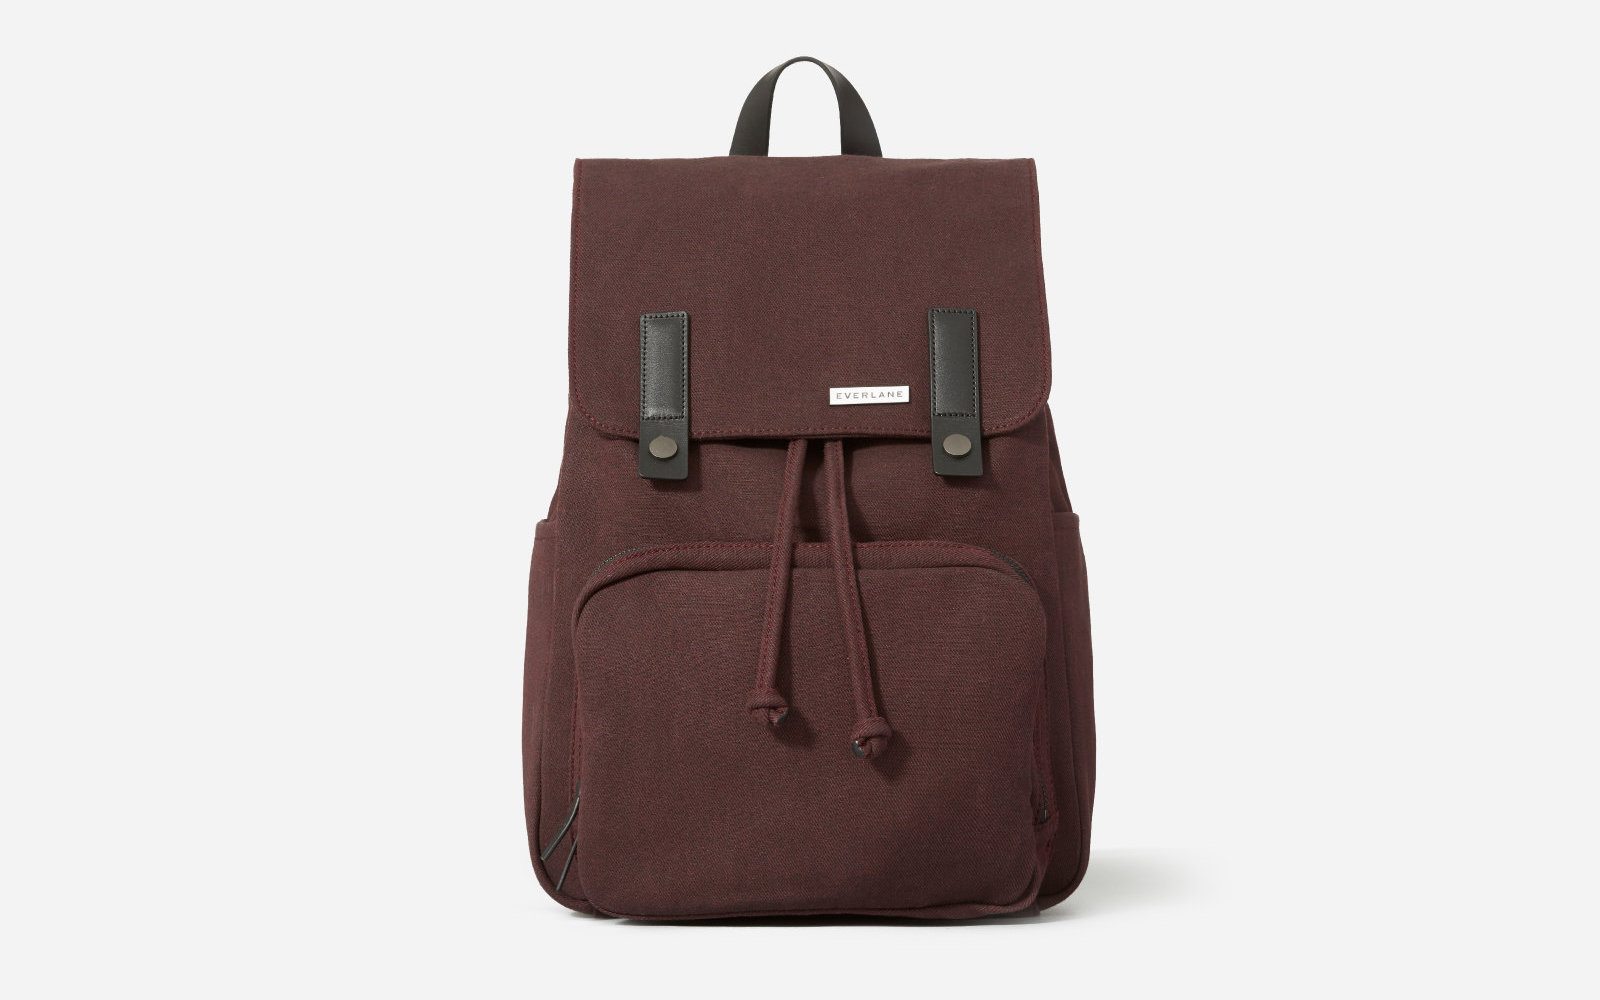 The Most Stylish Travel Backpacks For Women  5879d8d6080b6